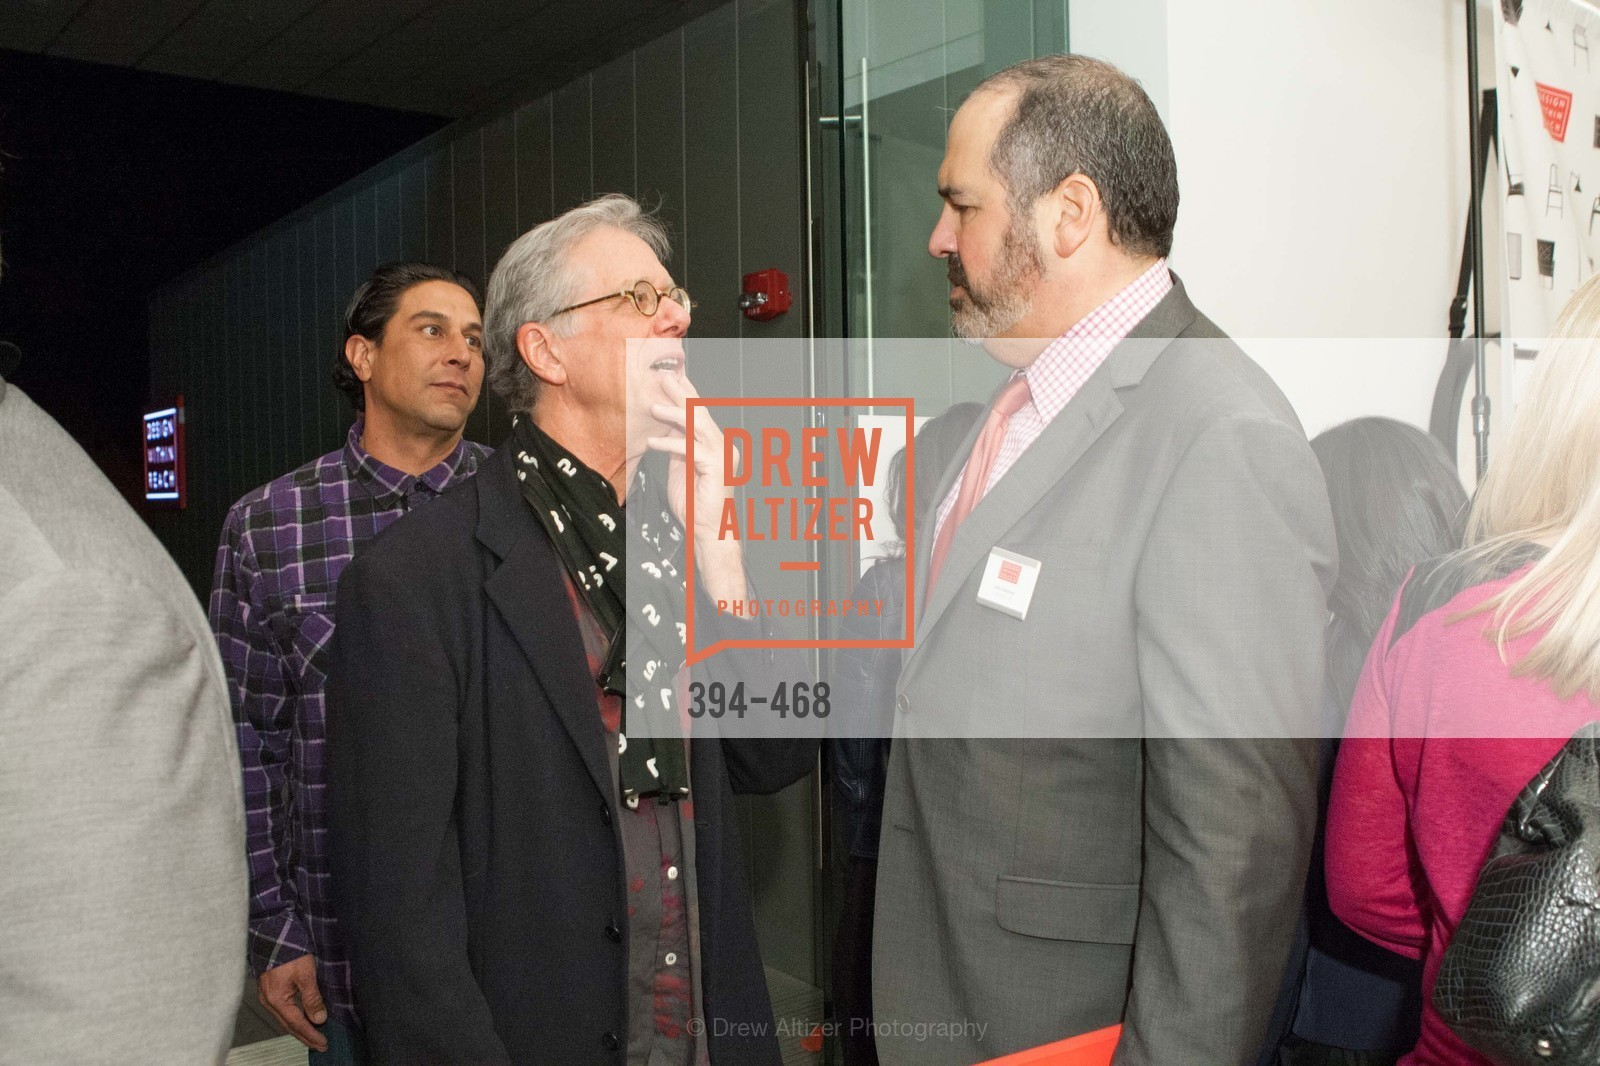 Rob Forbes, John Edelman, DESIGN WITHIN REACH Studio Opening, US. US, January 21st, 2014,Drew Altizer, Drew Altizer Photography, full-service agency, private events, San Francisco photographer, photographer california